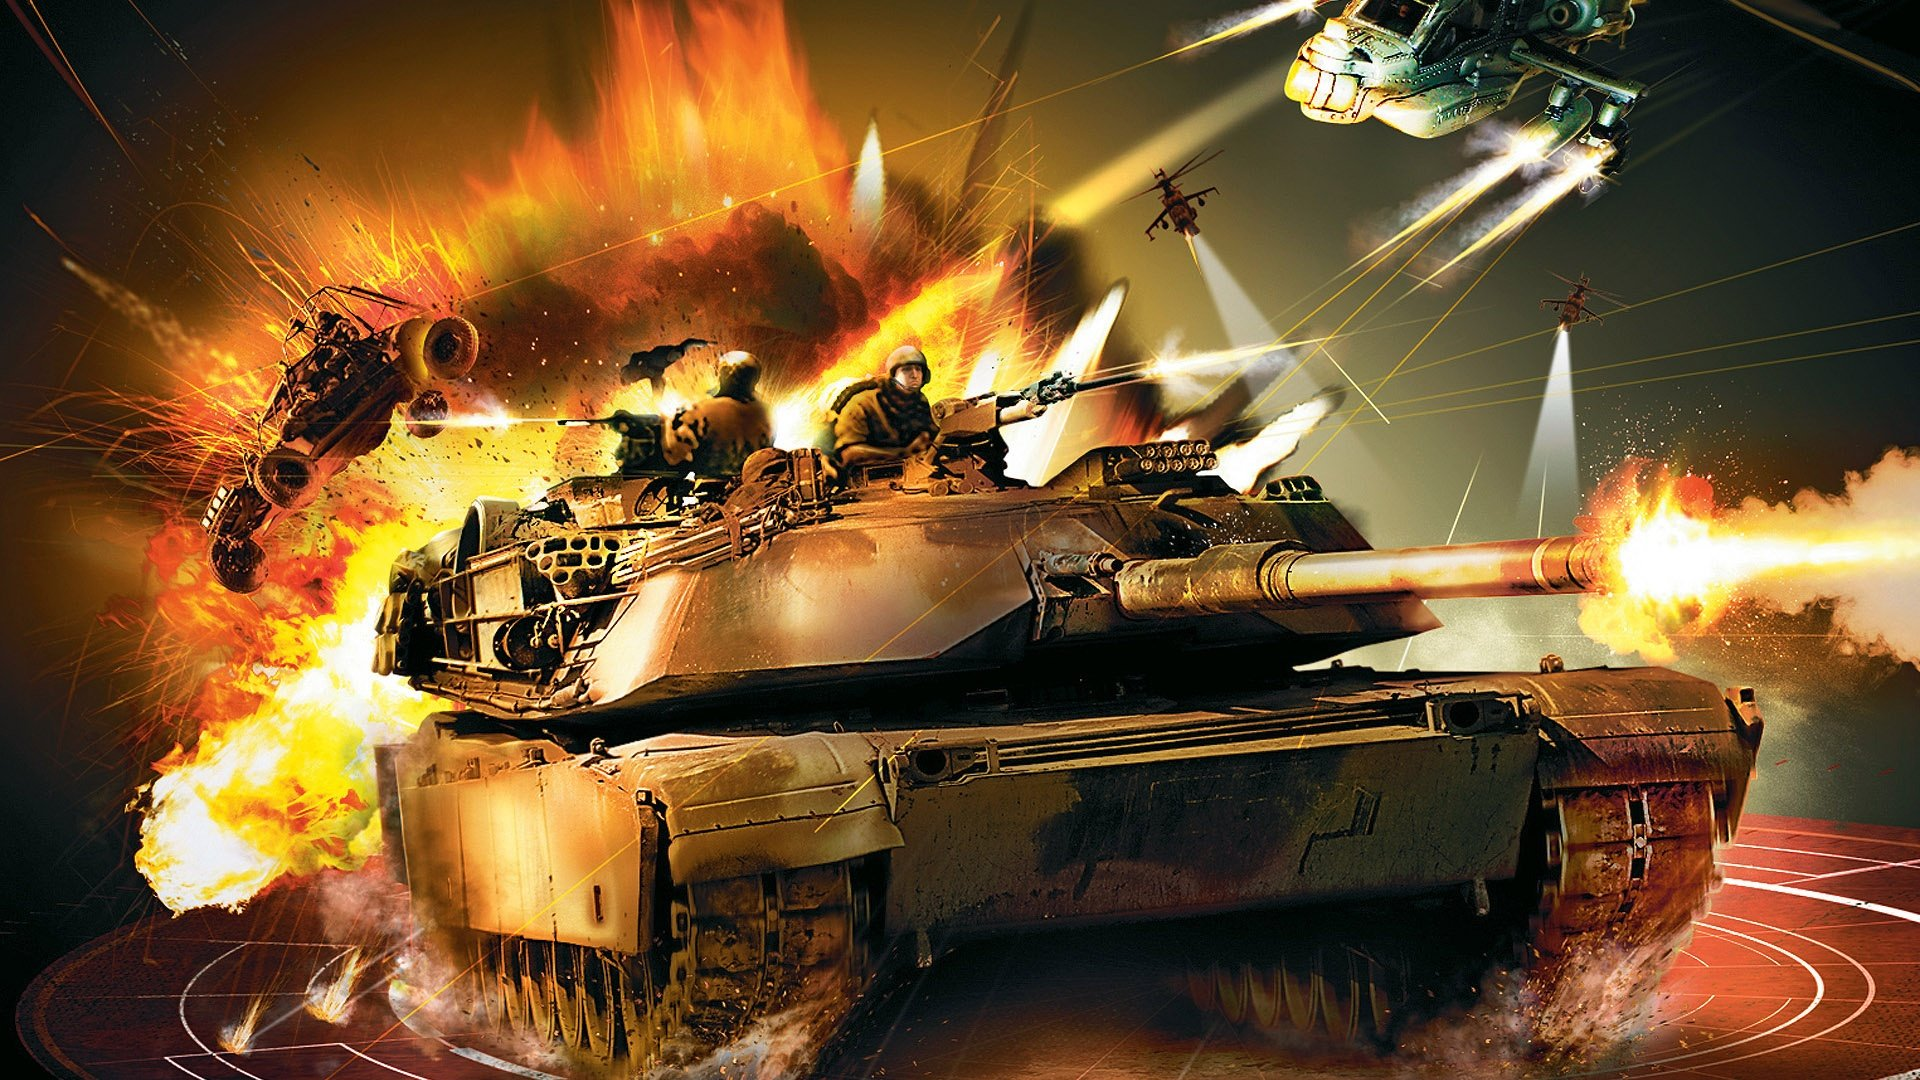 Cool Military Tank Wallpapers Army tank wallpapers in hd for 1920x1080